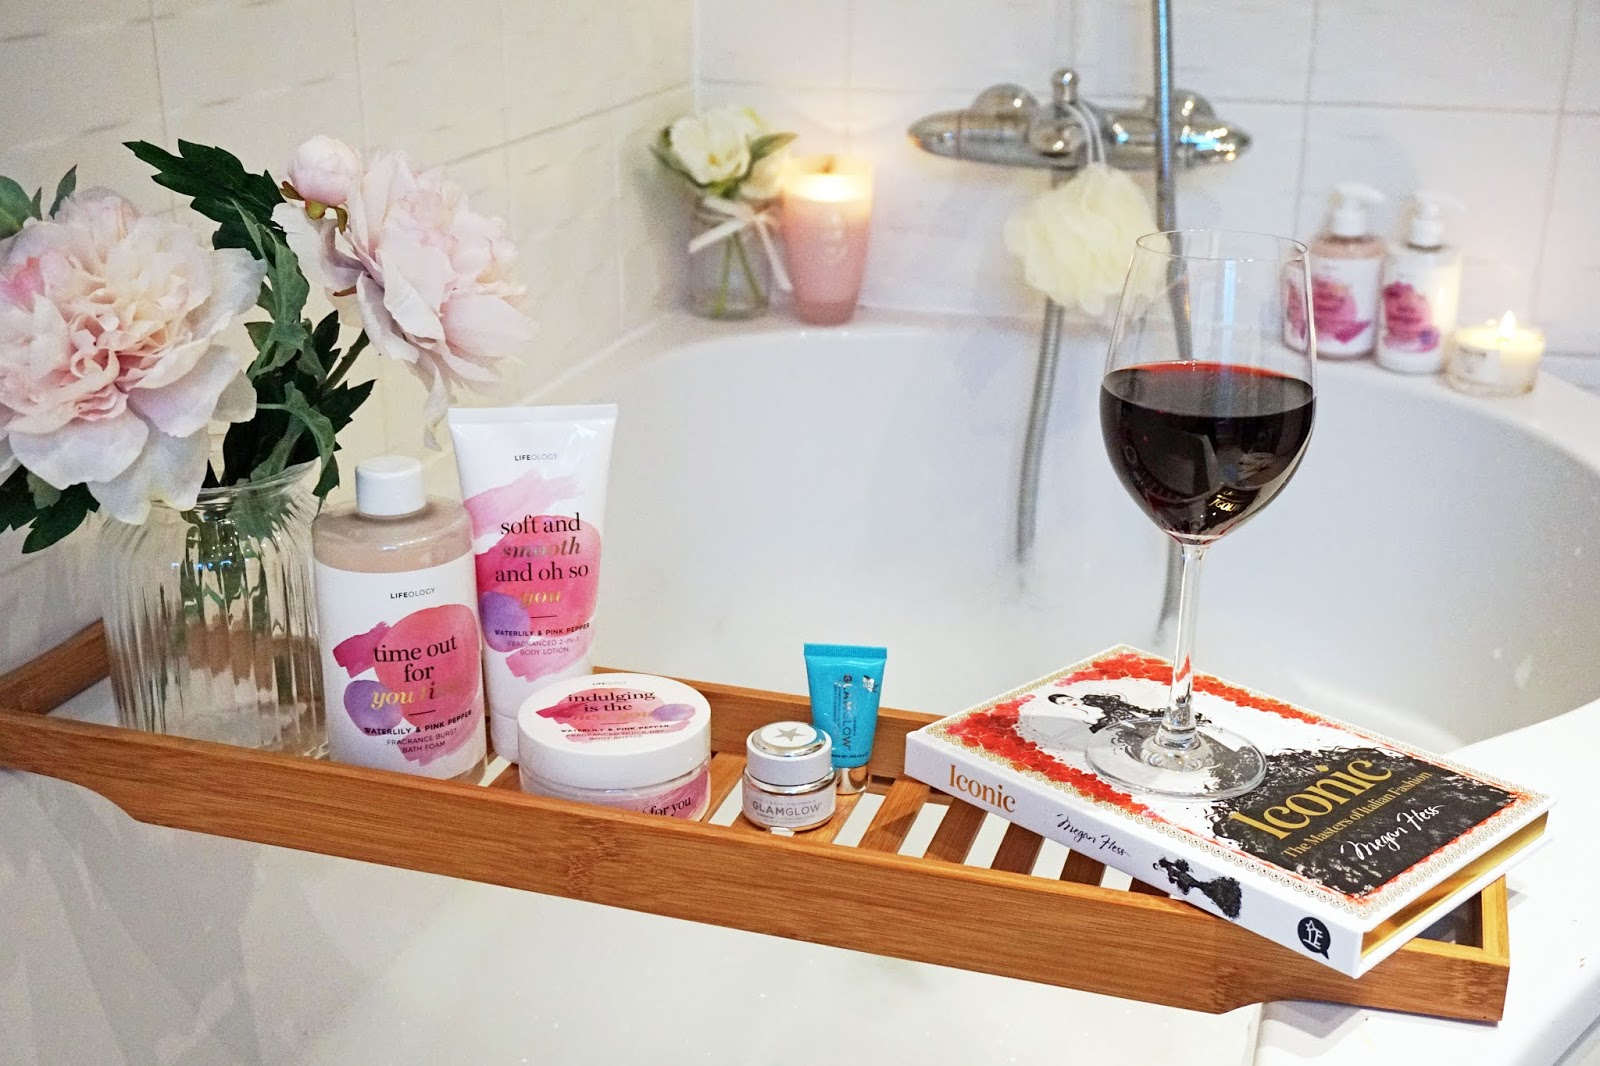 Bath time essentials/pampering routine